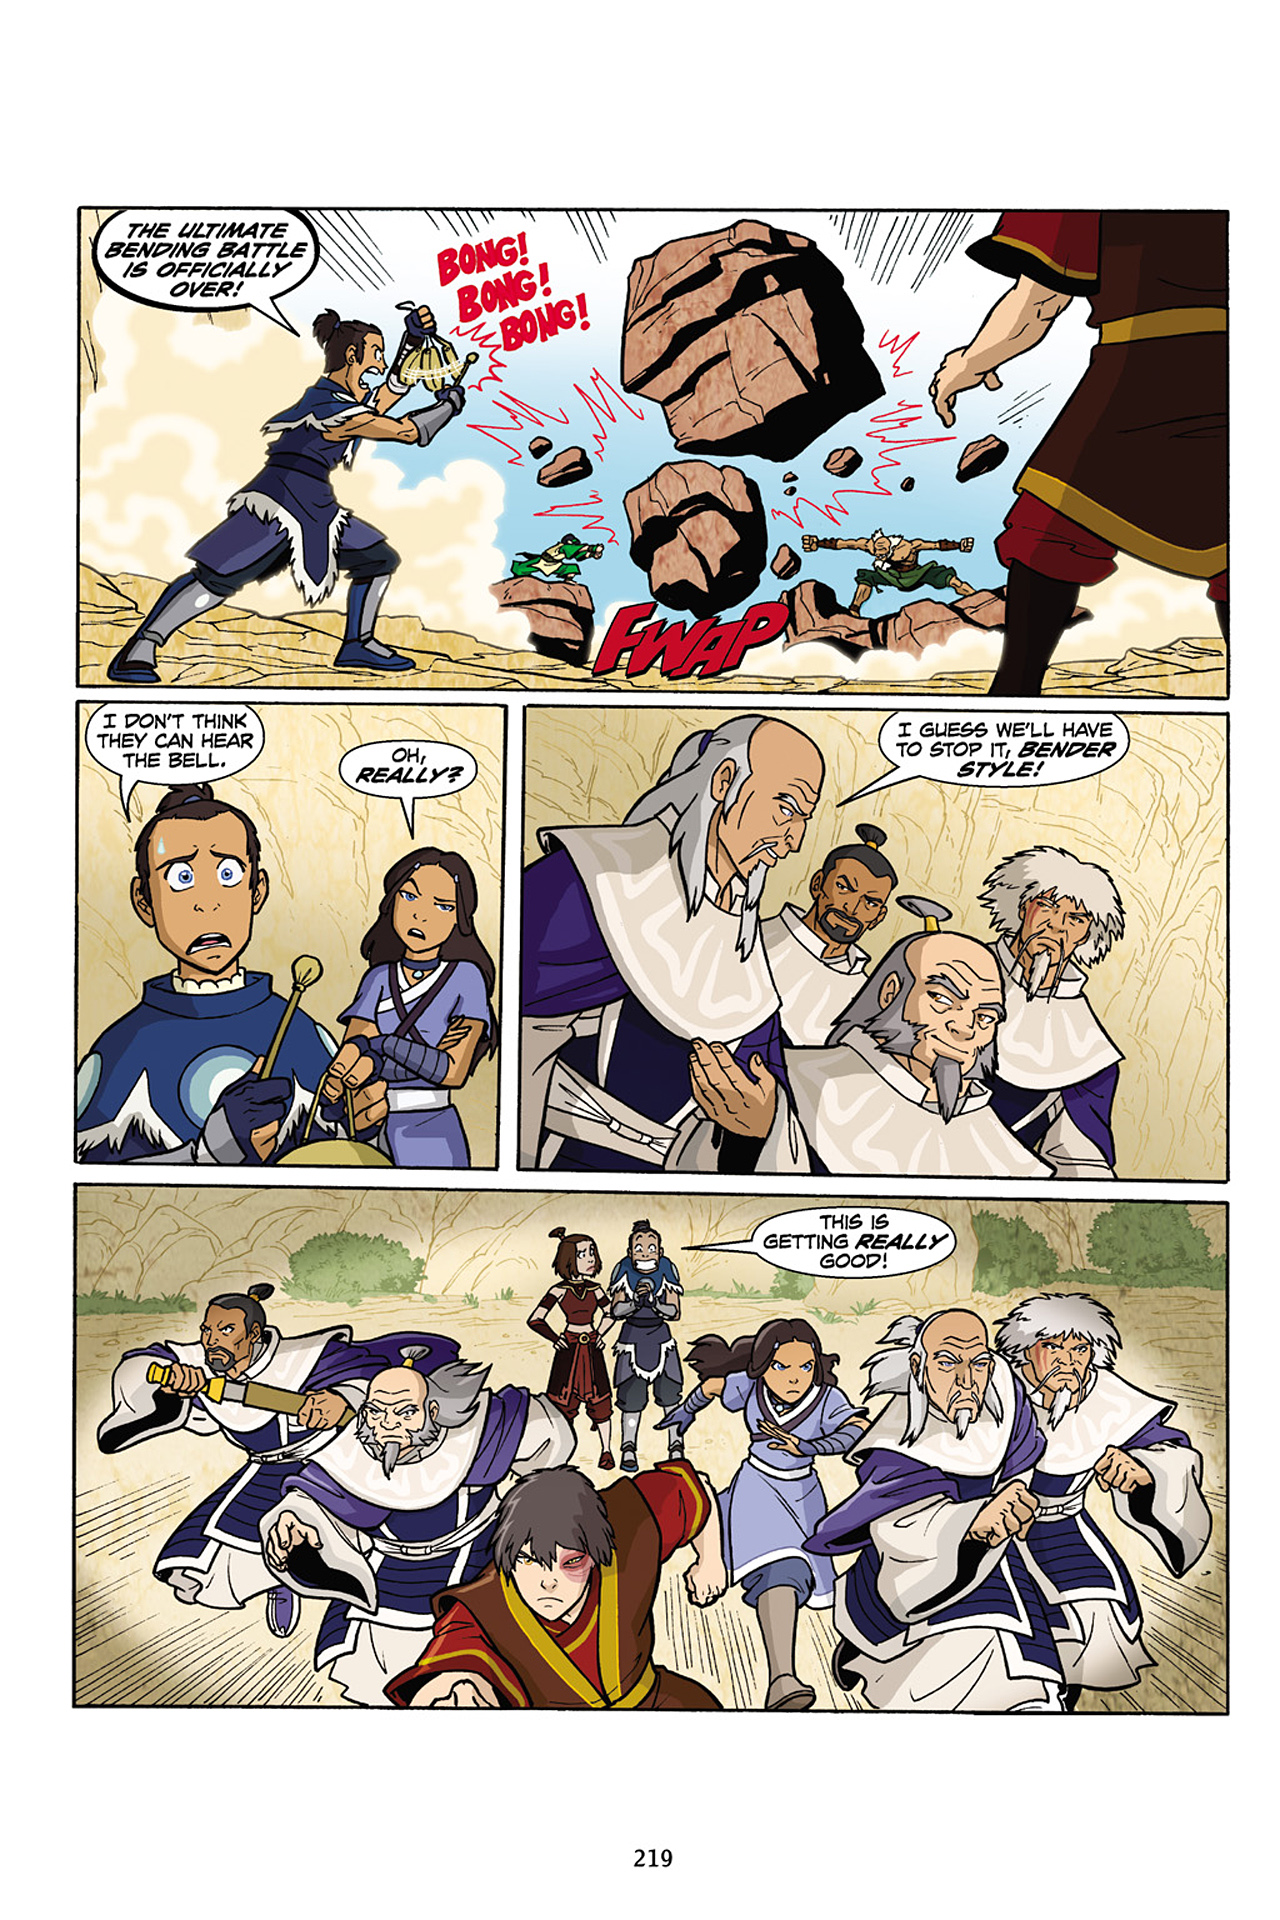 Nickelodeon Avatar: The Last Airbender - The Lost Adventures chap full pic 220